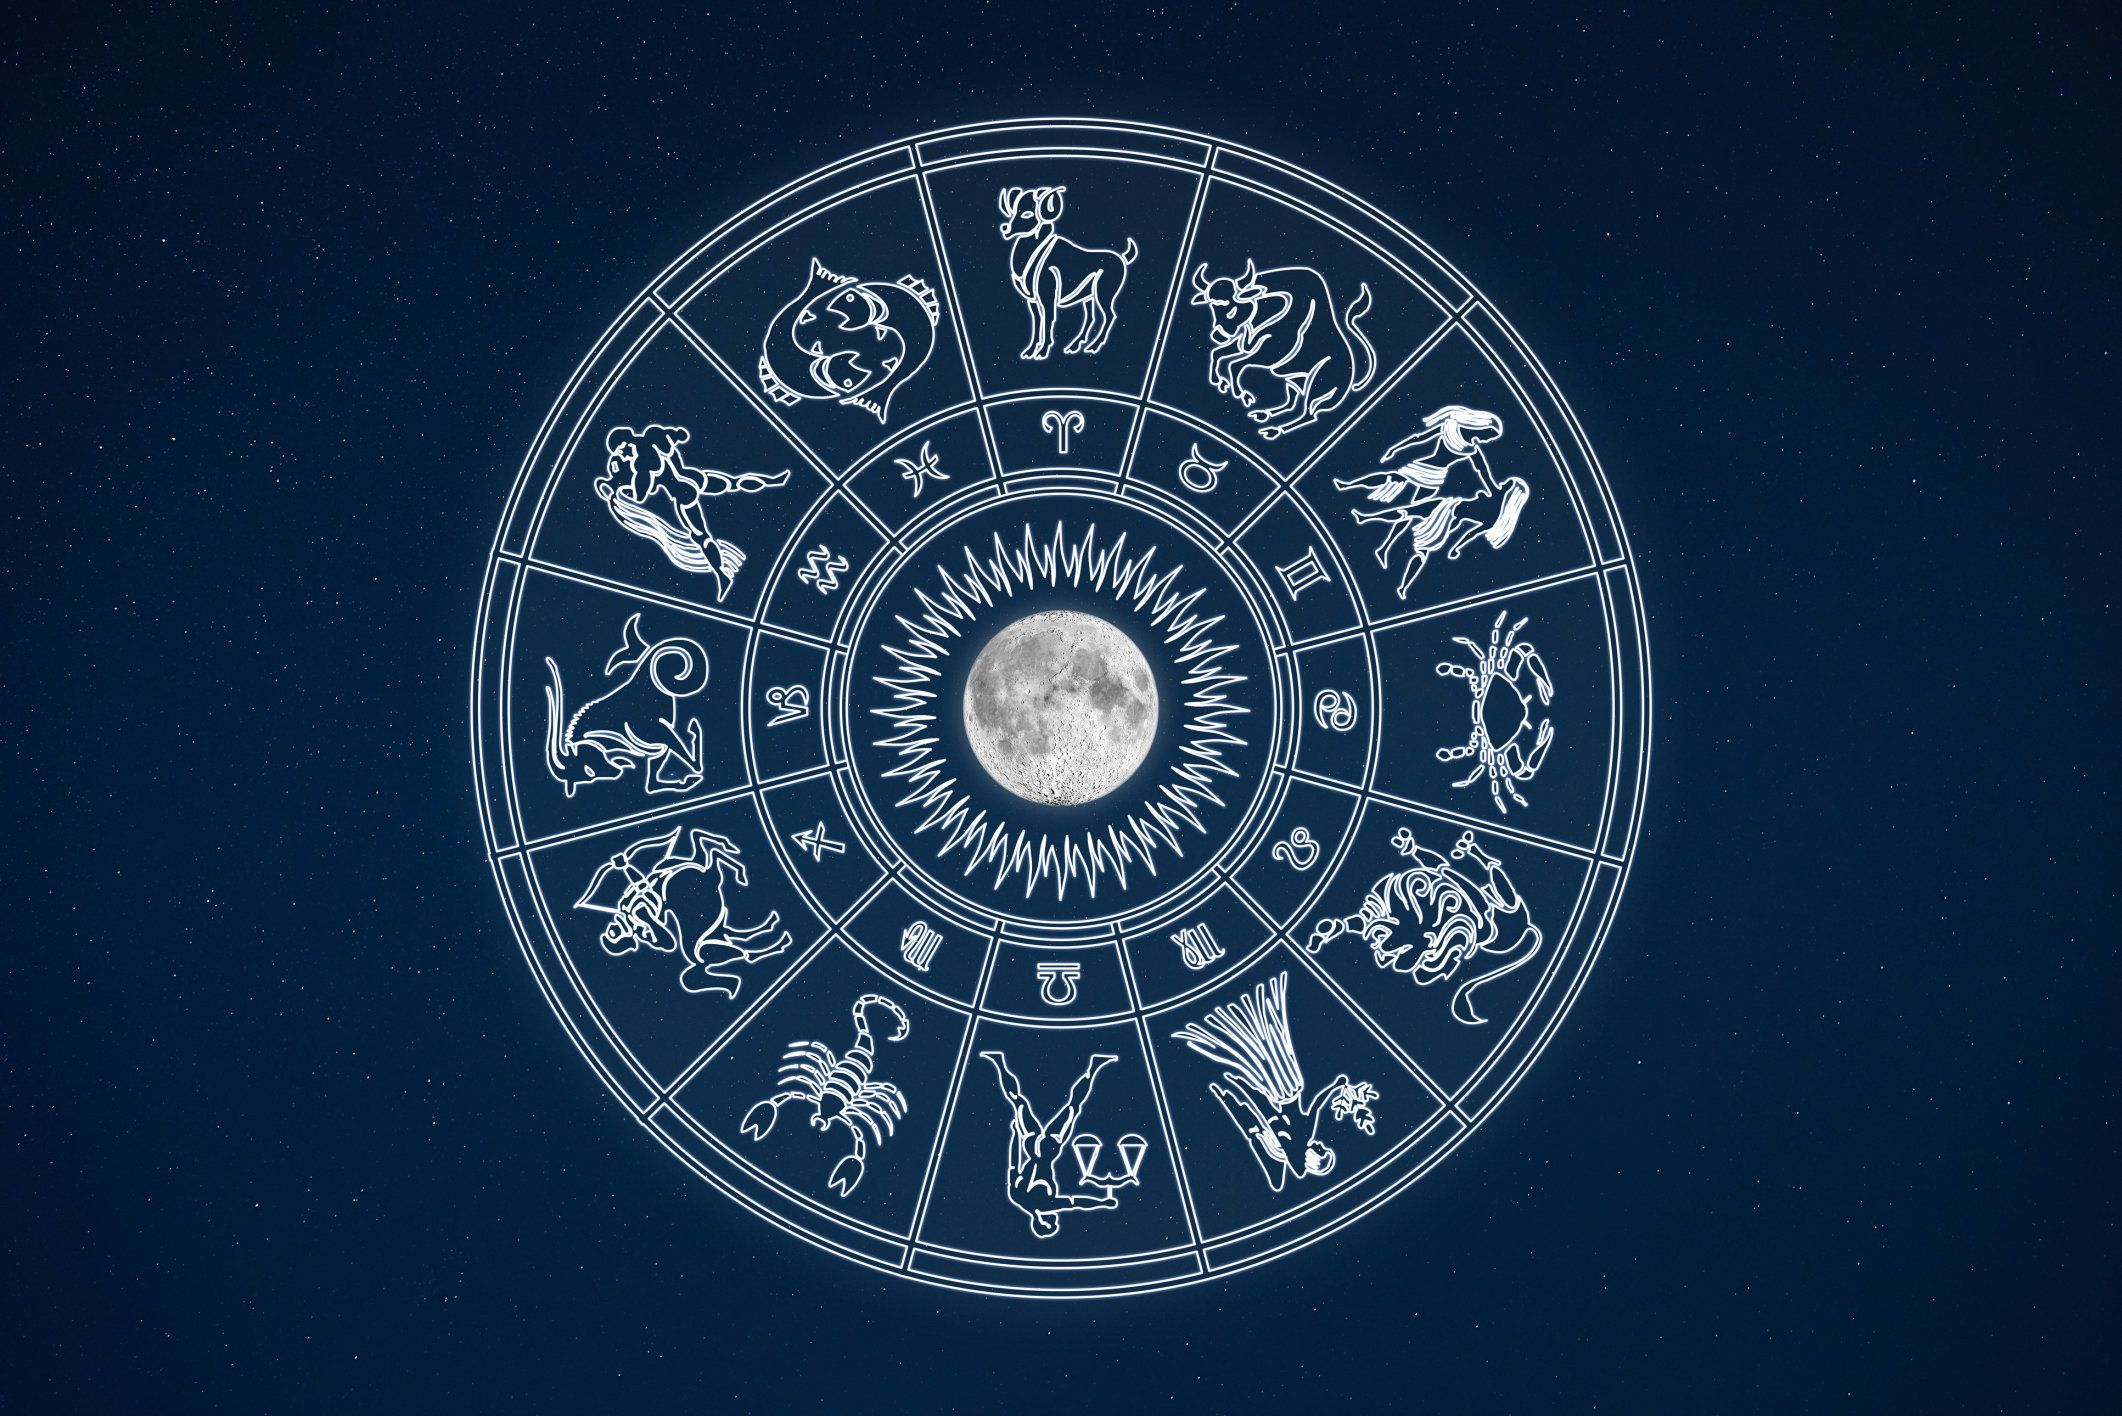 Horoscope wheel of zodiac signs in dark sky with symbols